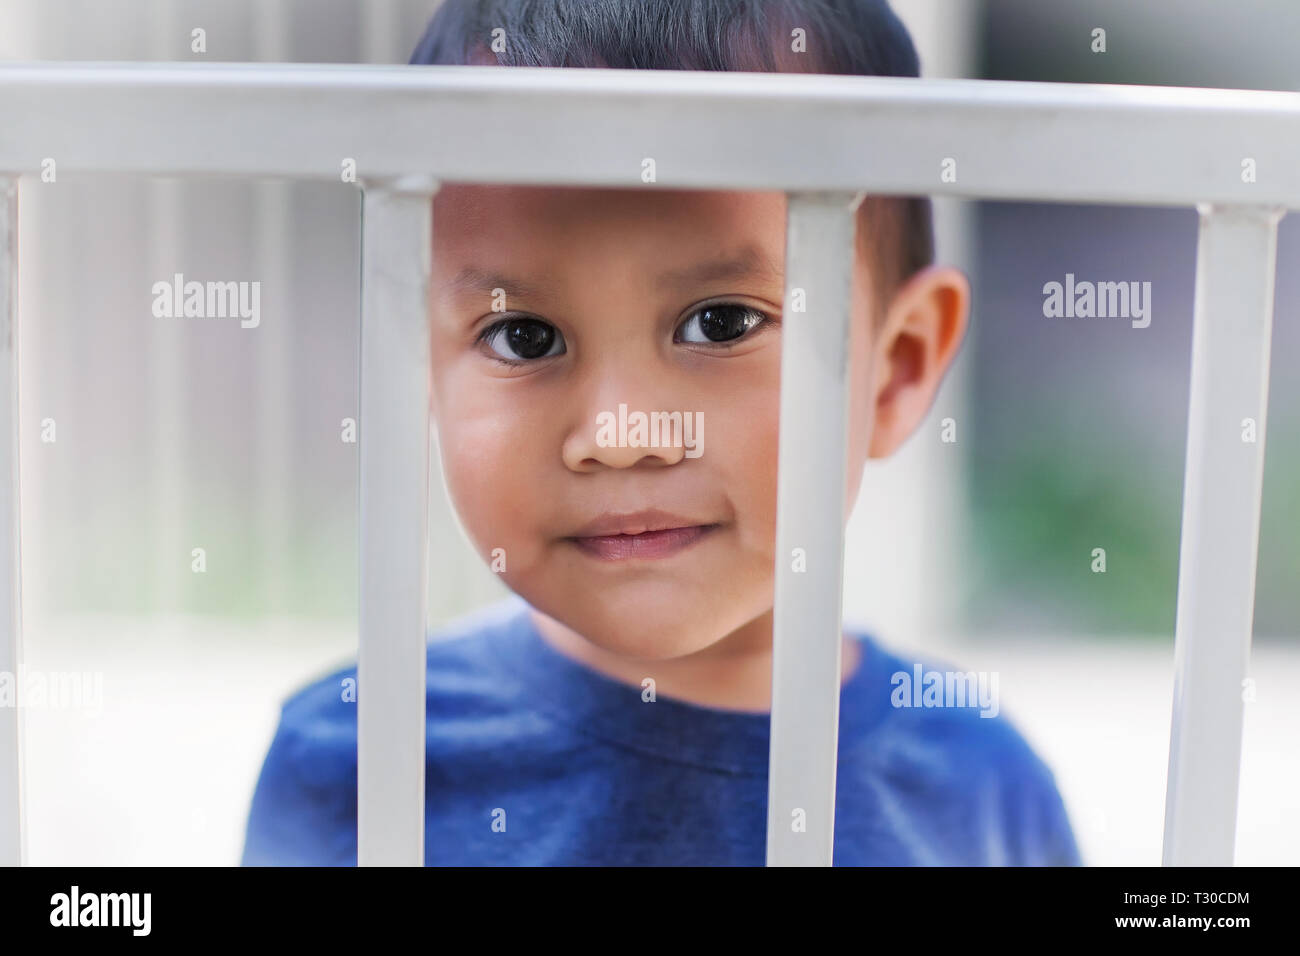 Young hispanic boy behind bars from a crib looking sad about getting a time out for bad behavior. - Stock Image